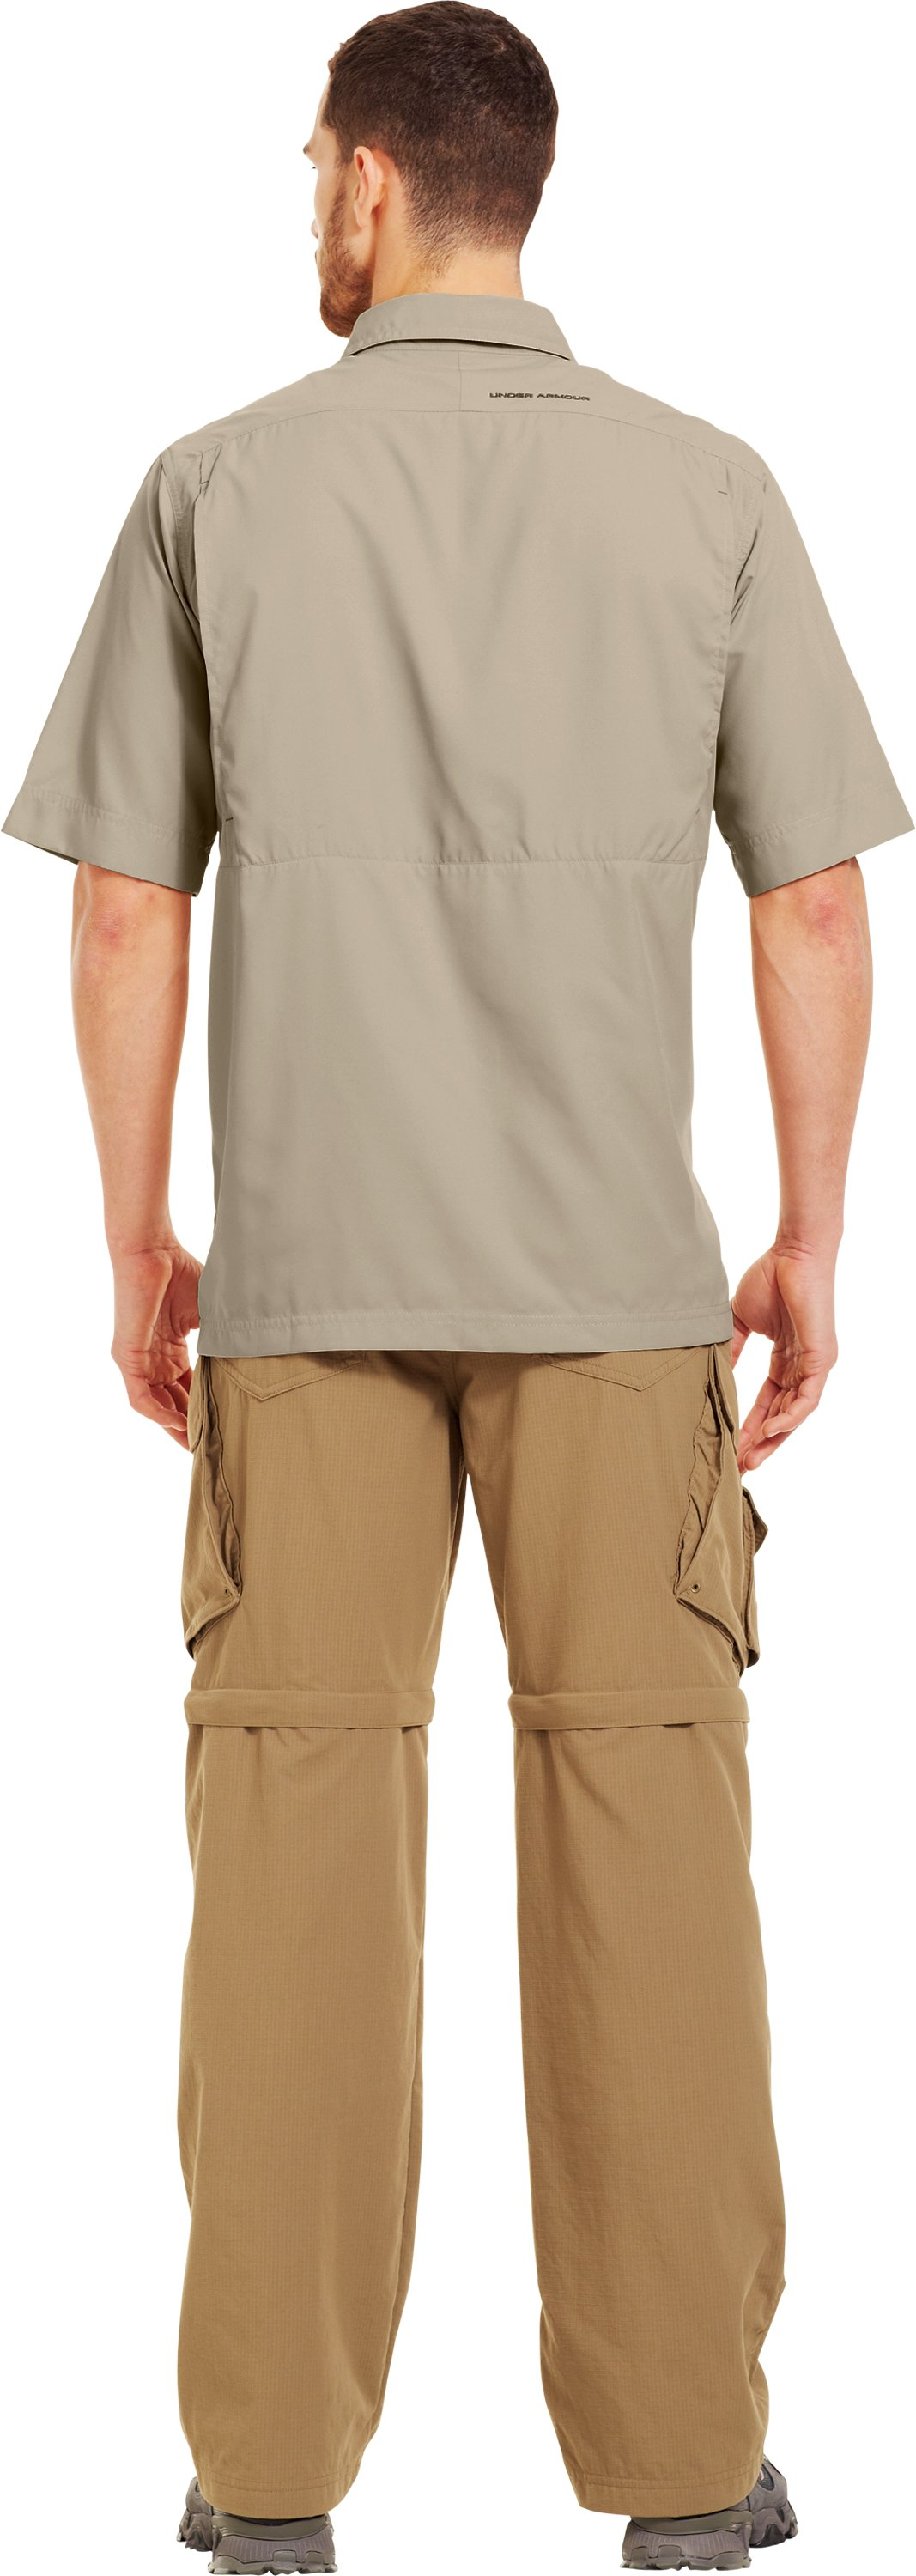 Men's Flats Guide Short Sleeve Shirt, Desert Sand, Back